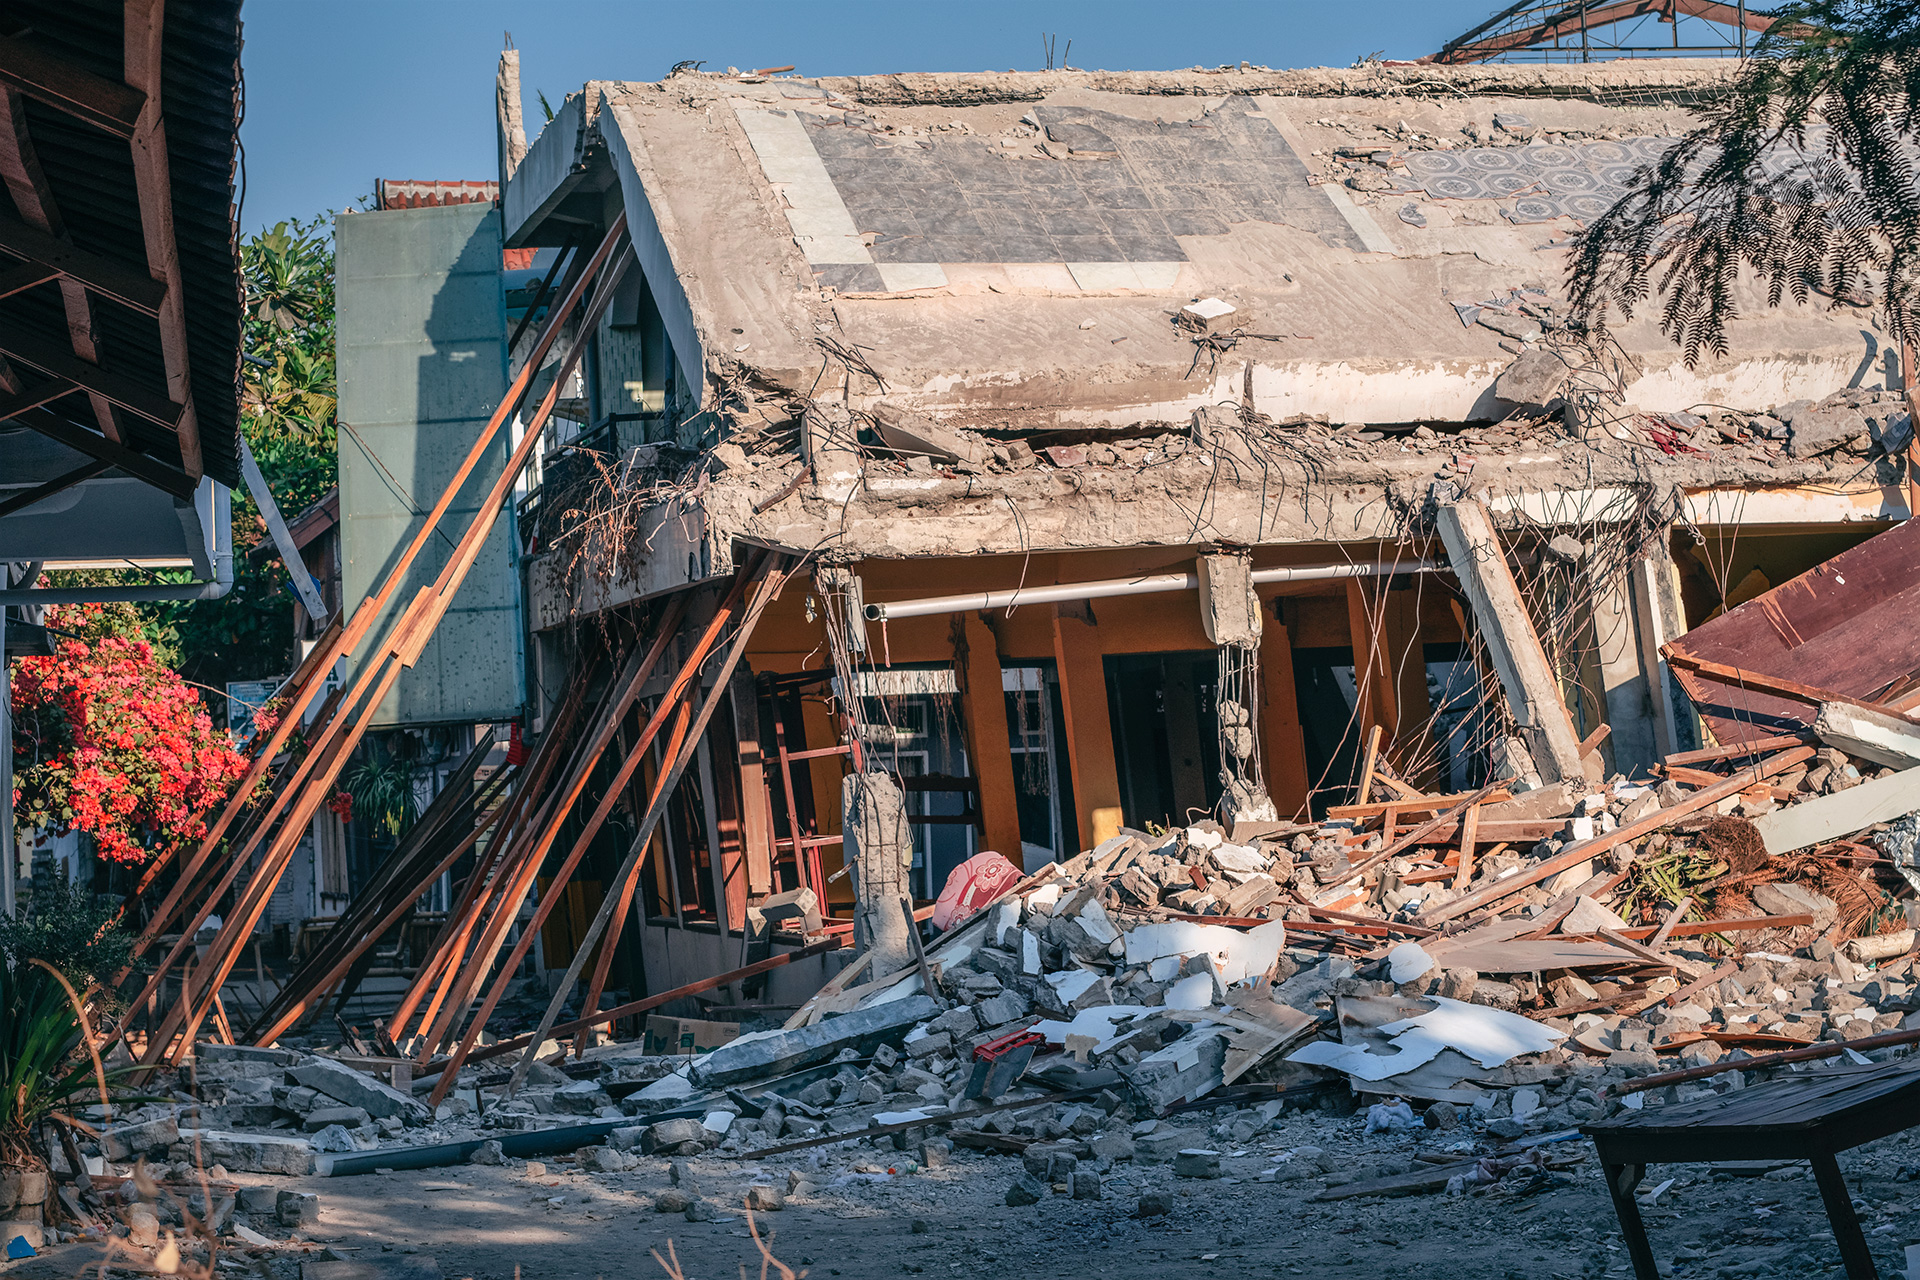 Collapsed building after the 2018 Gili Island earthquakes. Is it safe to travel to the Gili Islands?